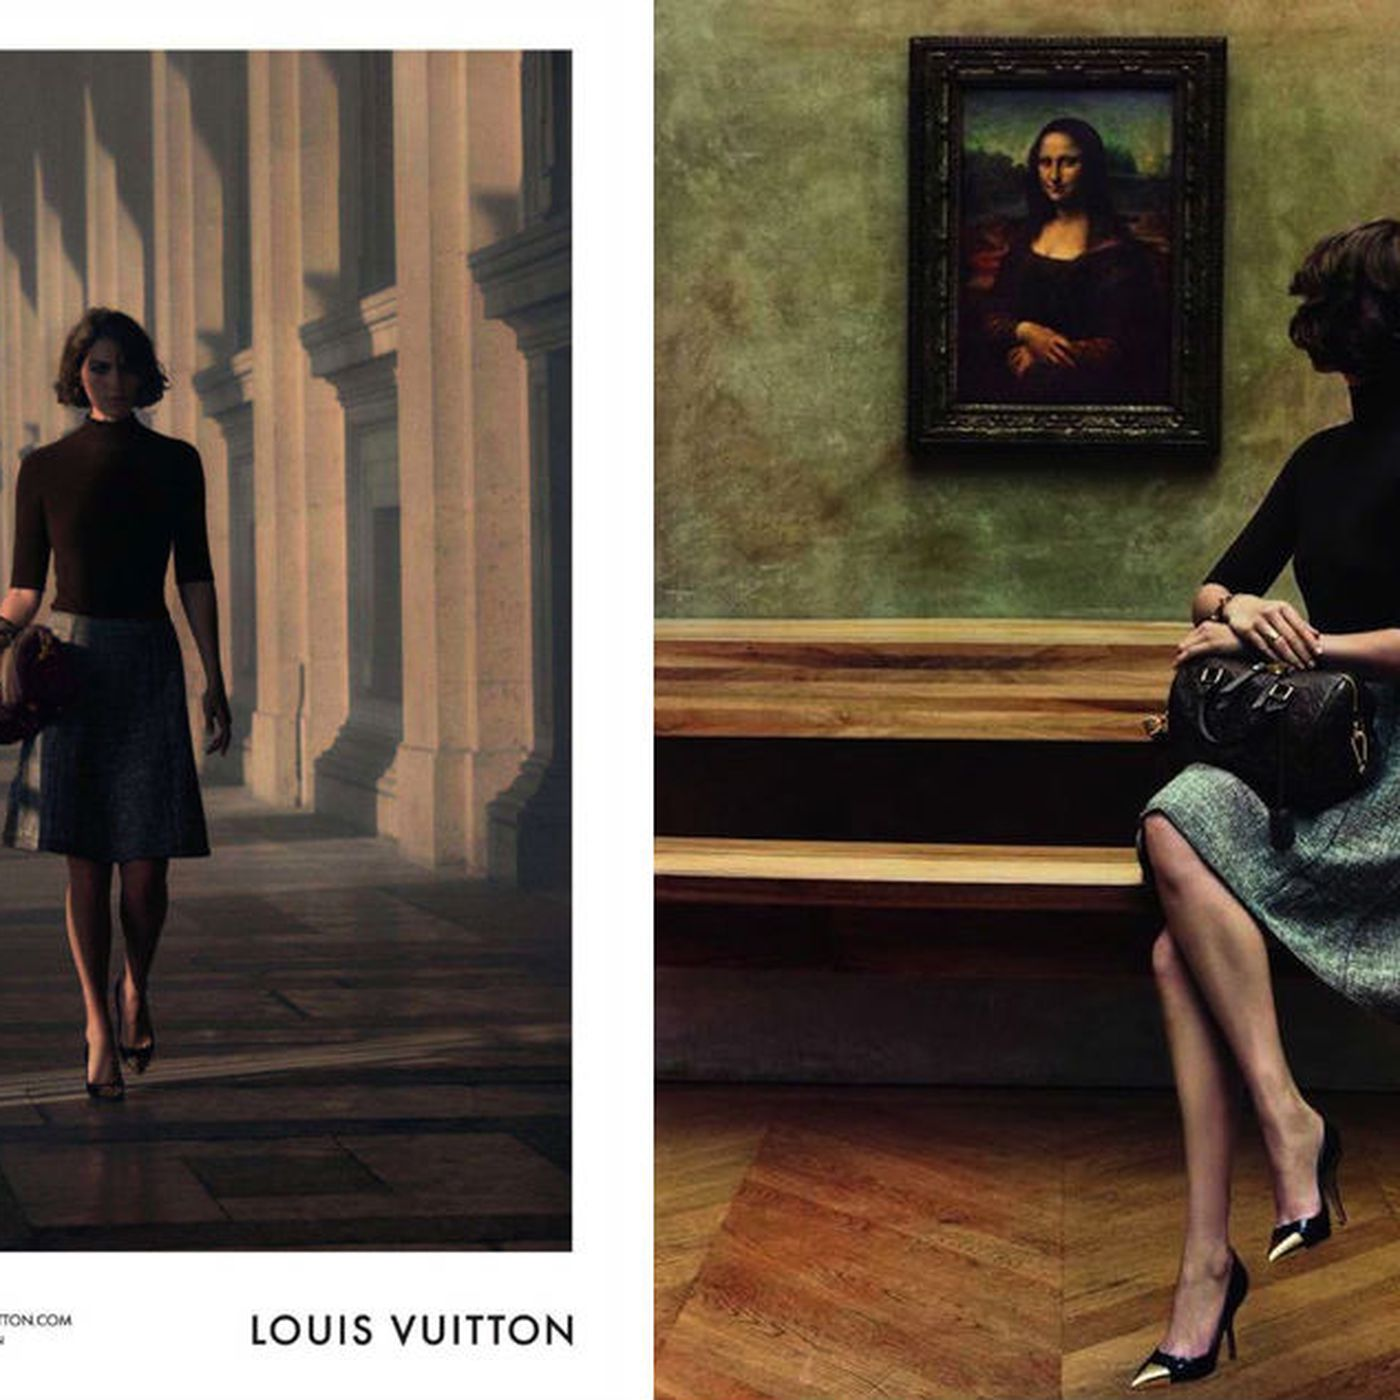 Amy Winehouse Leaked Photos arizona muse for louis vuitton ads leak; amy winehouse's